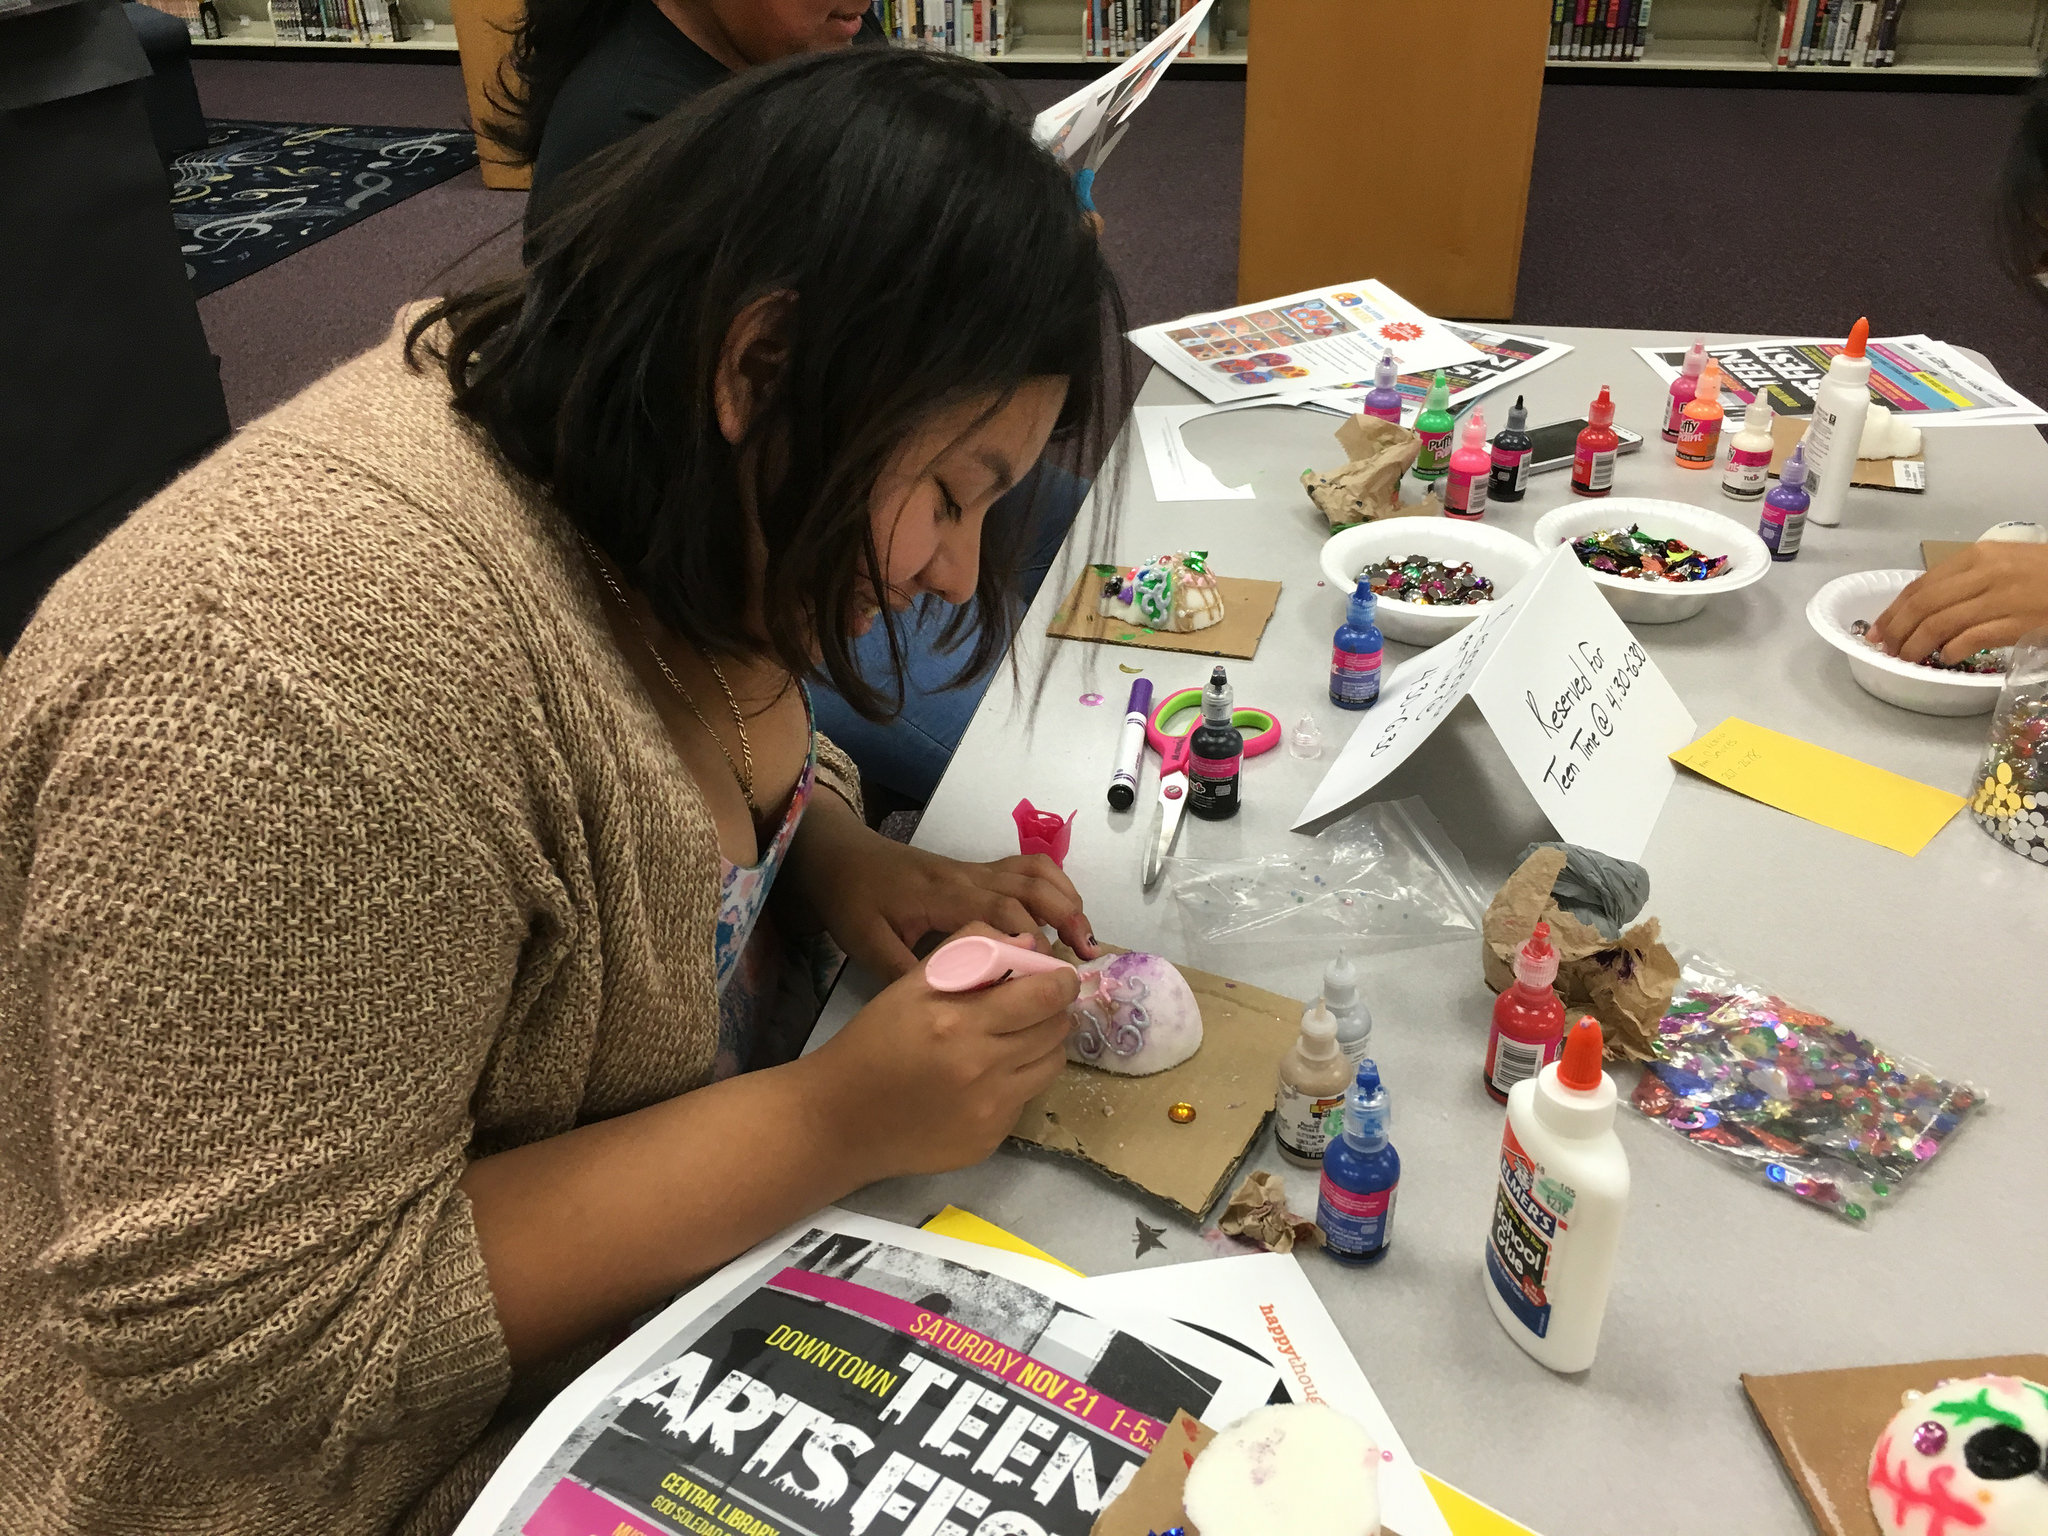 Teens participate in weekly arts and crafts projects at the Teen Library at Central. Photo by 210TeenLibrary.